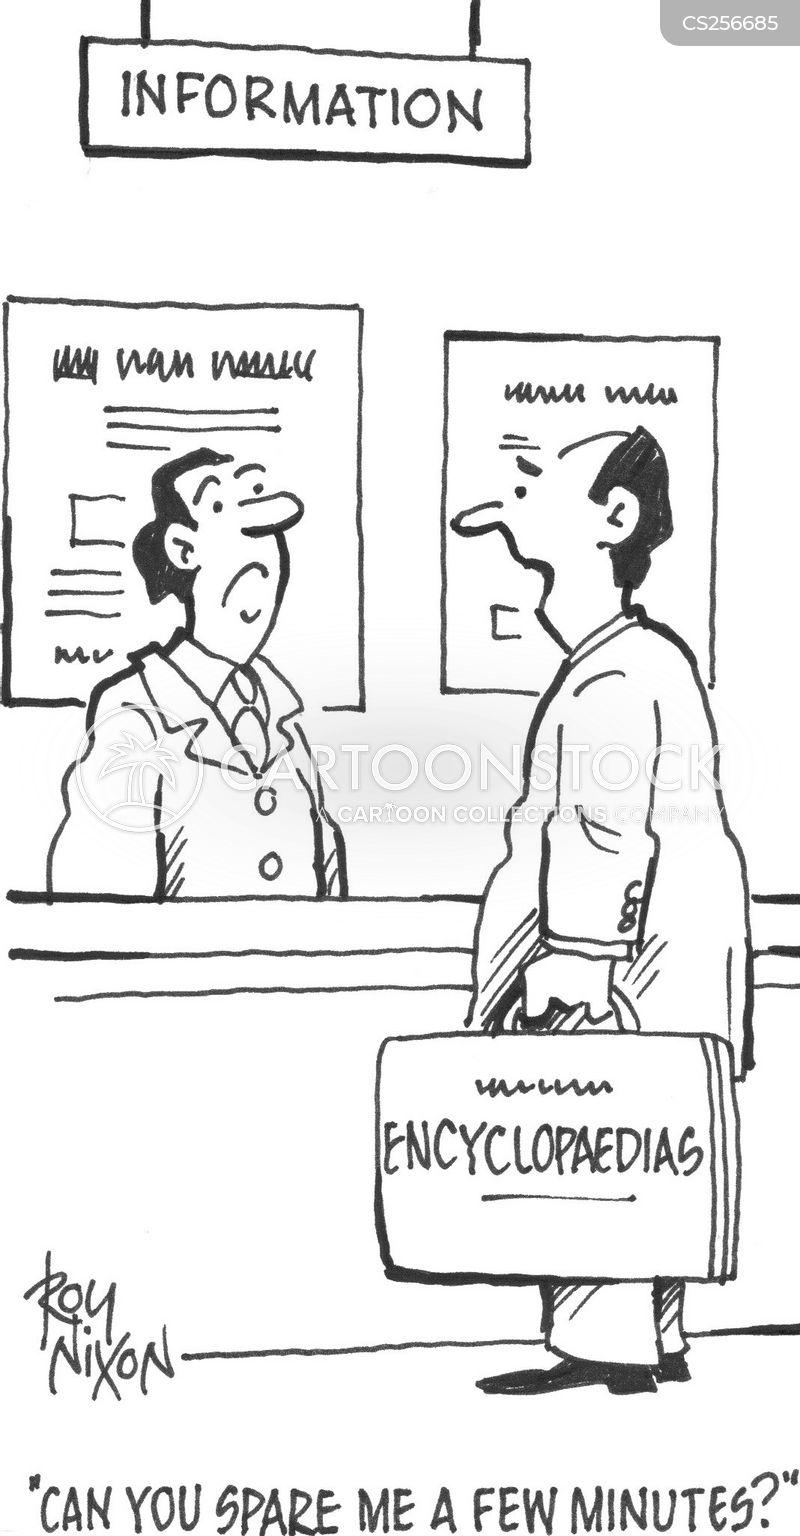 encyclopaedia cartoon